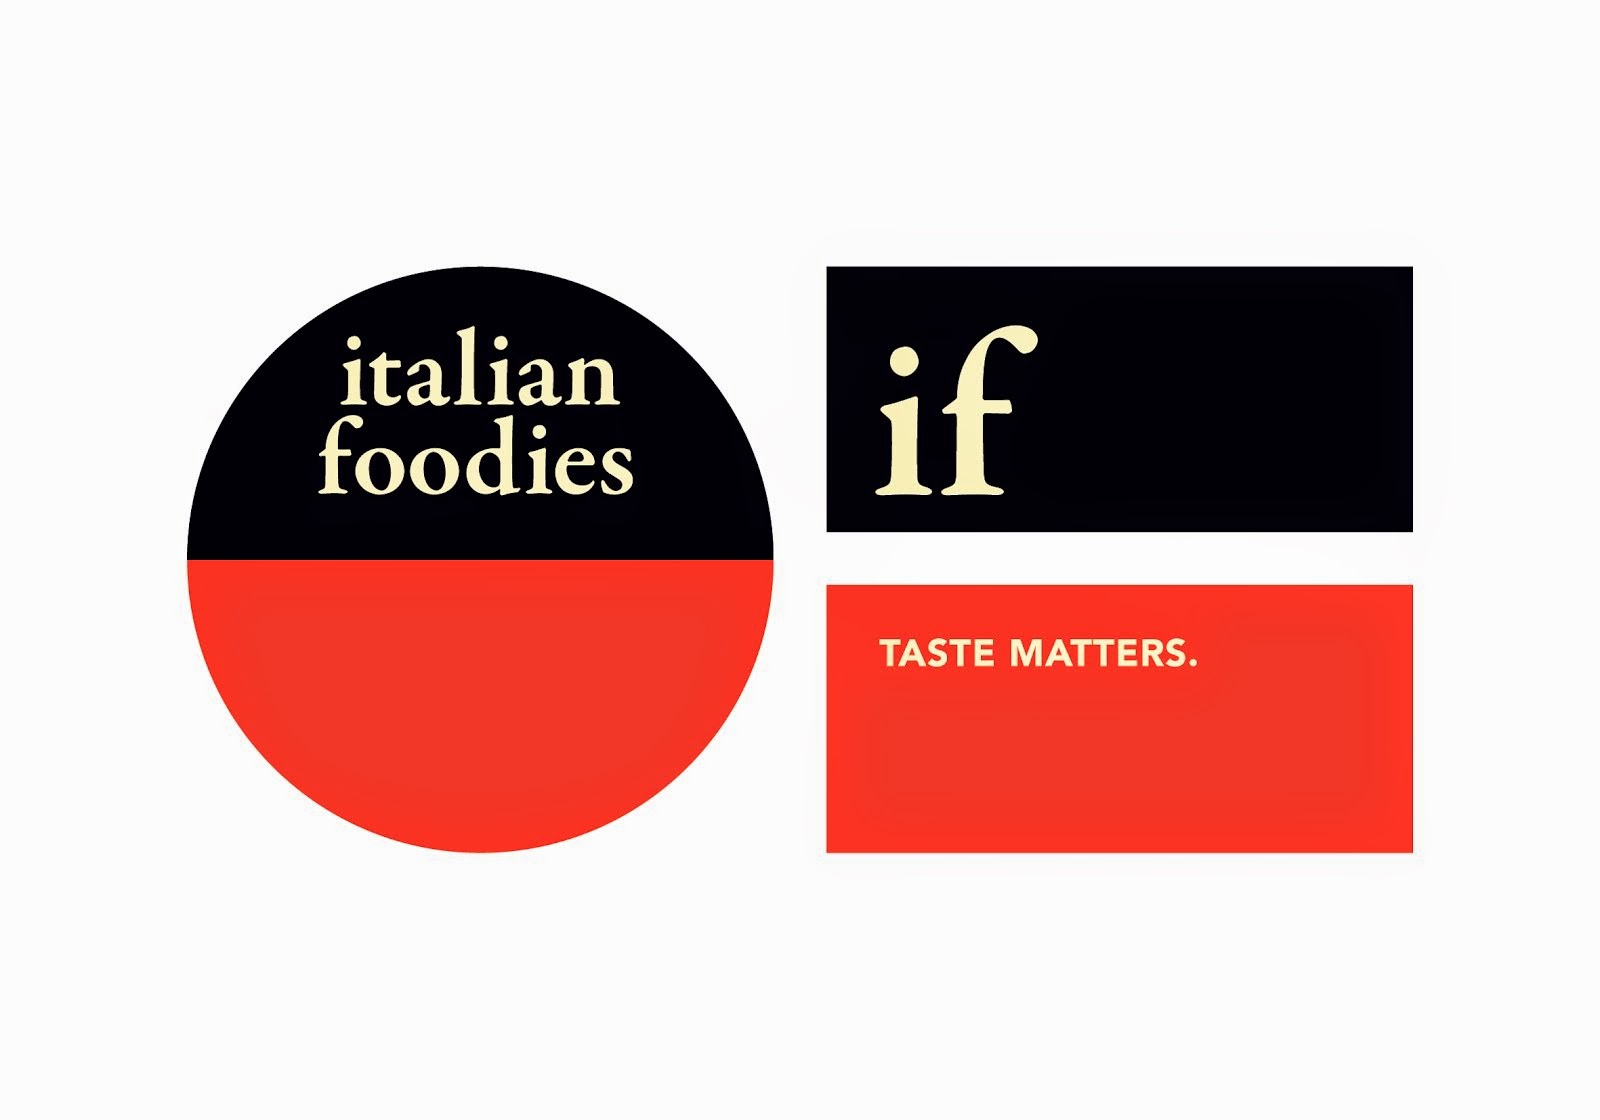 10% off at Italian Foodies